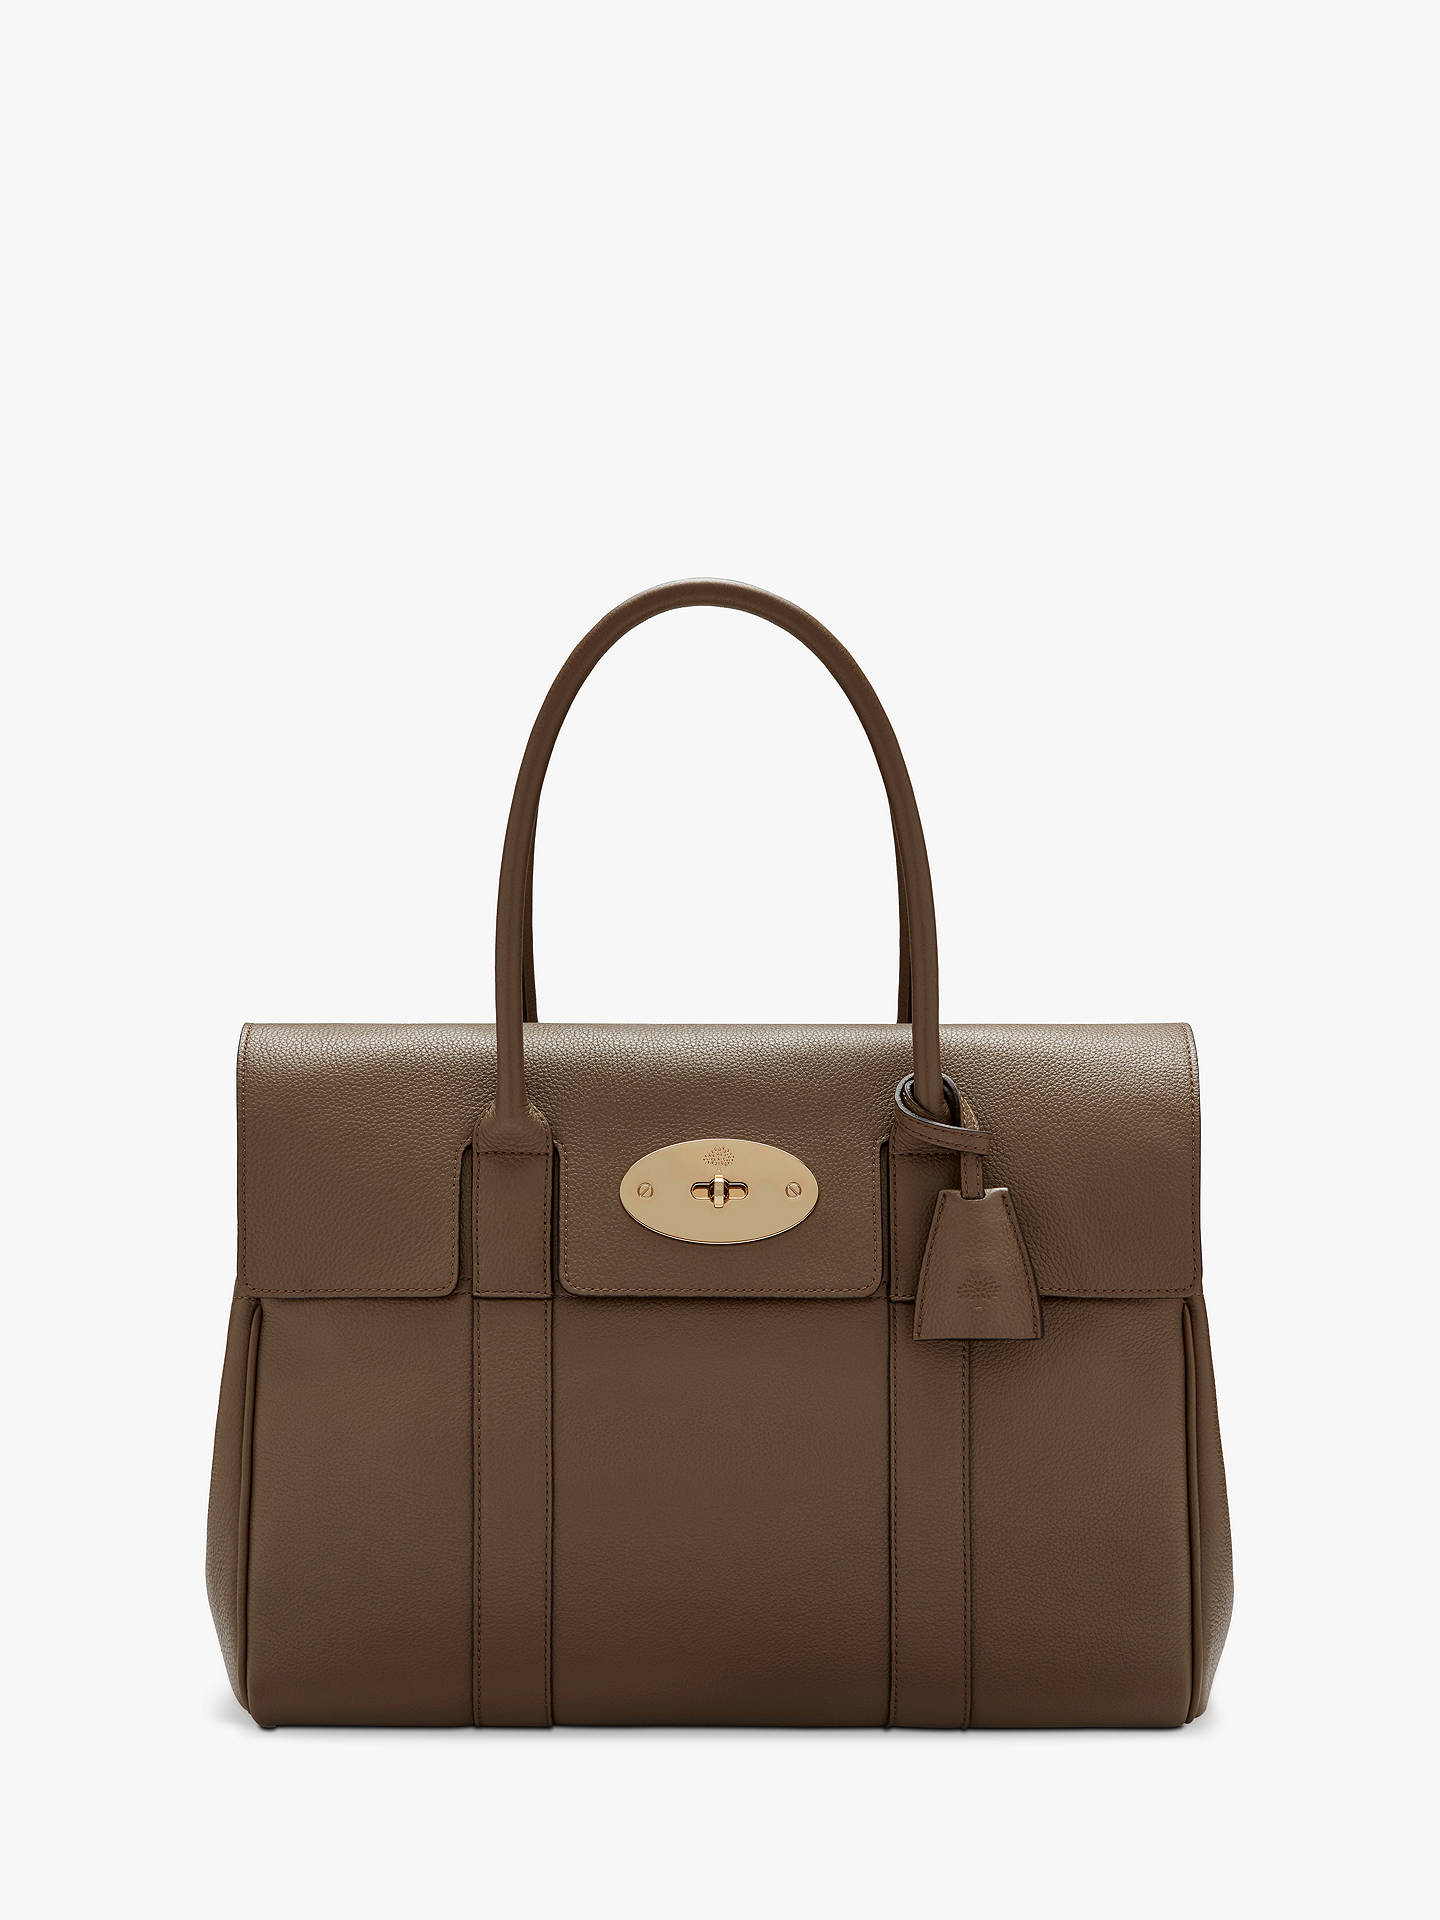 5344d8f643 Buy Mulberry Bayswater Heritage Small Classic Grain Leather Handbag, Clay  Online at johnlewis.com ...